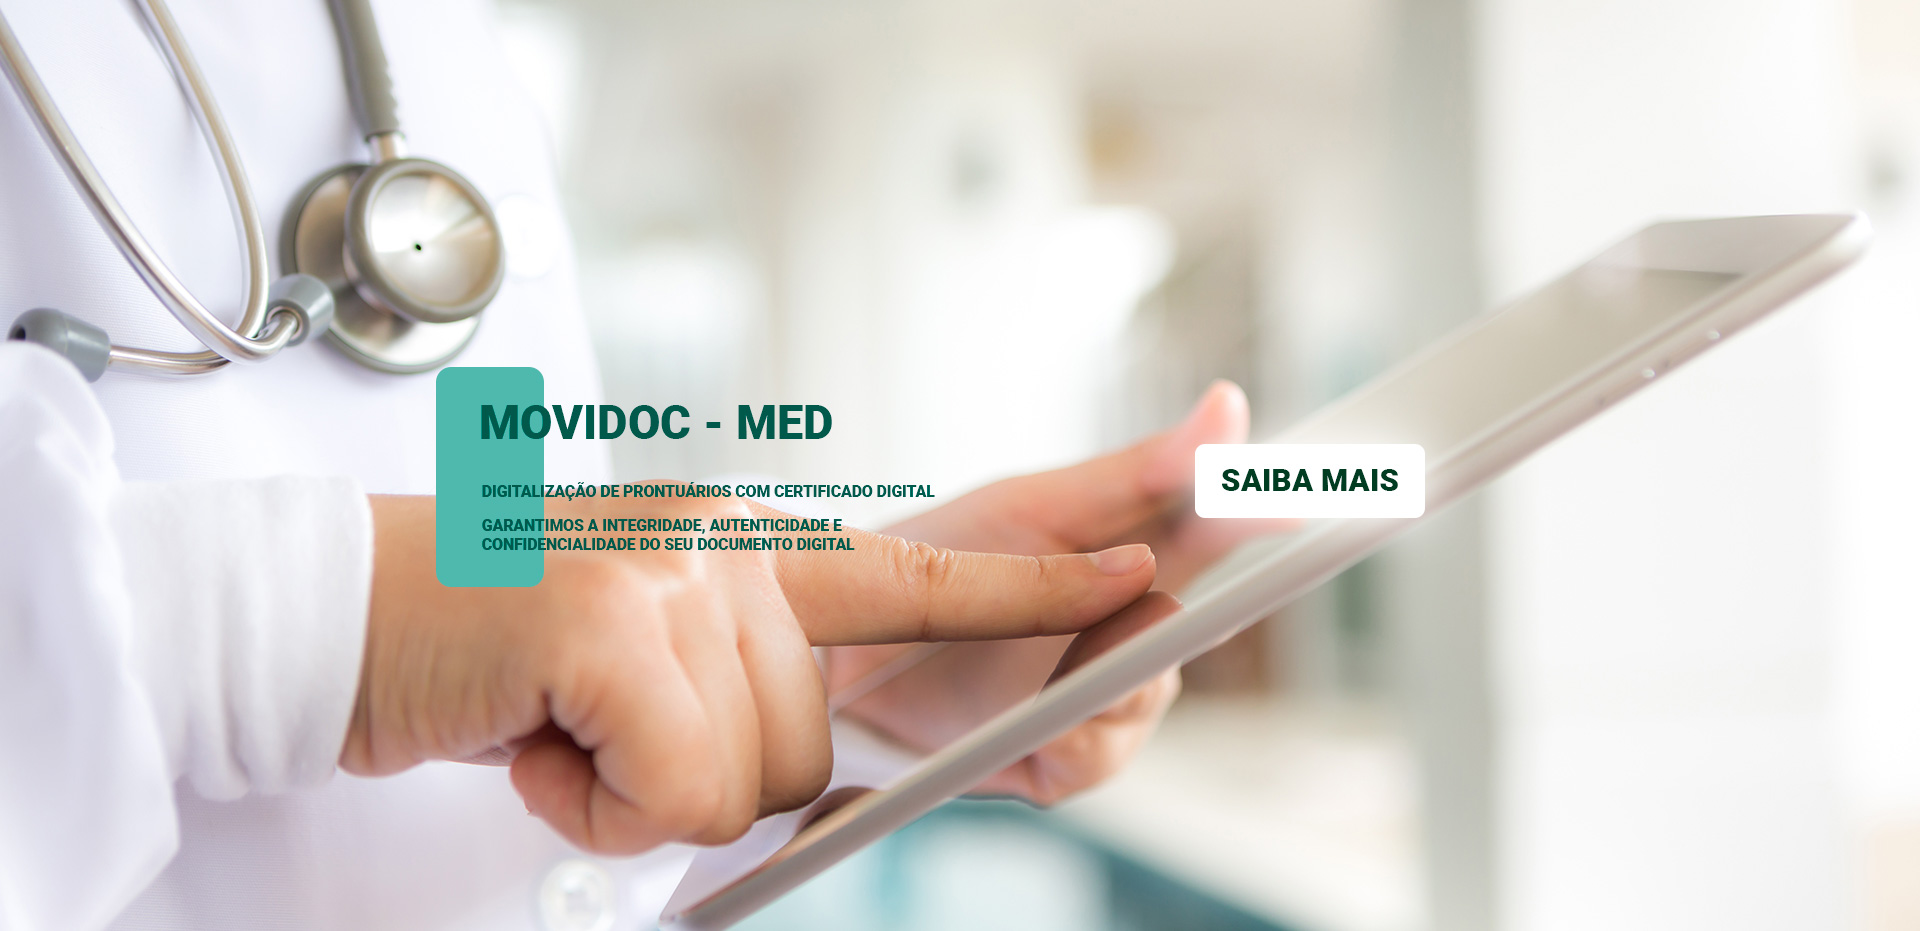 MOVIDOC - MED